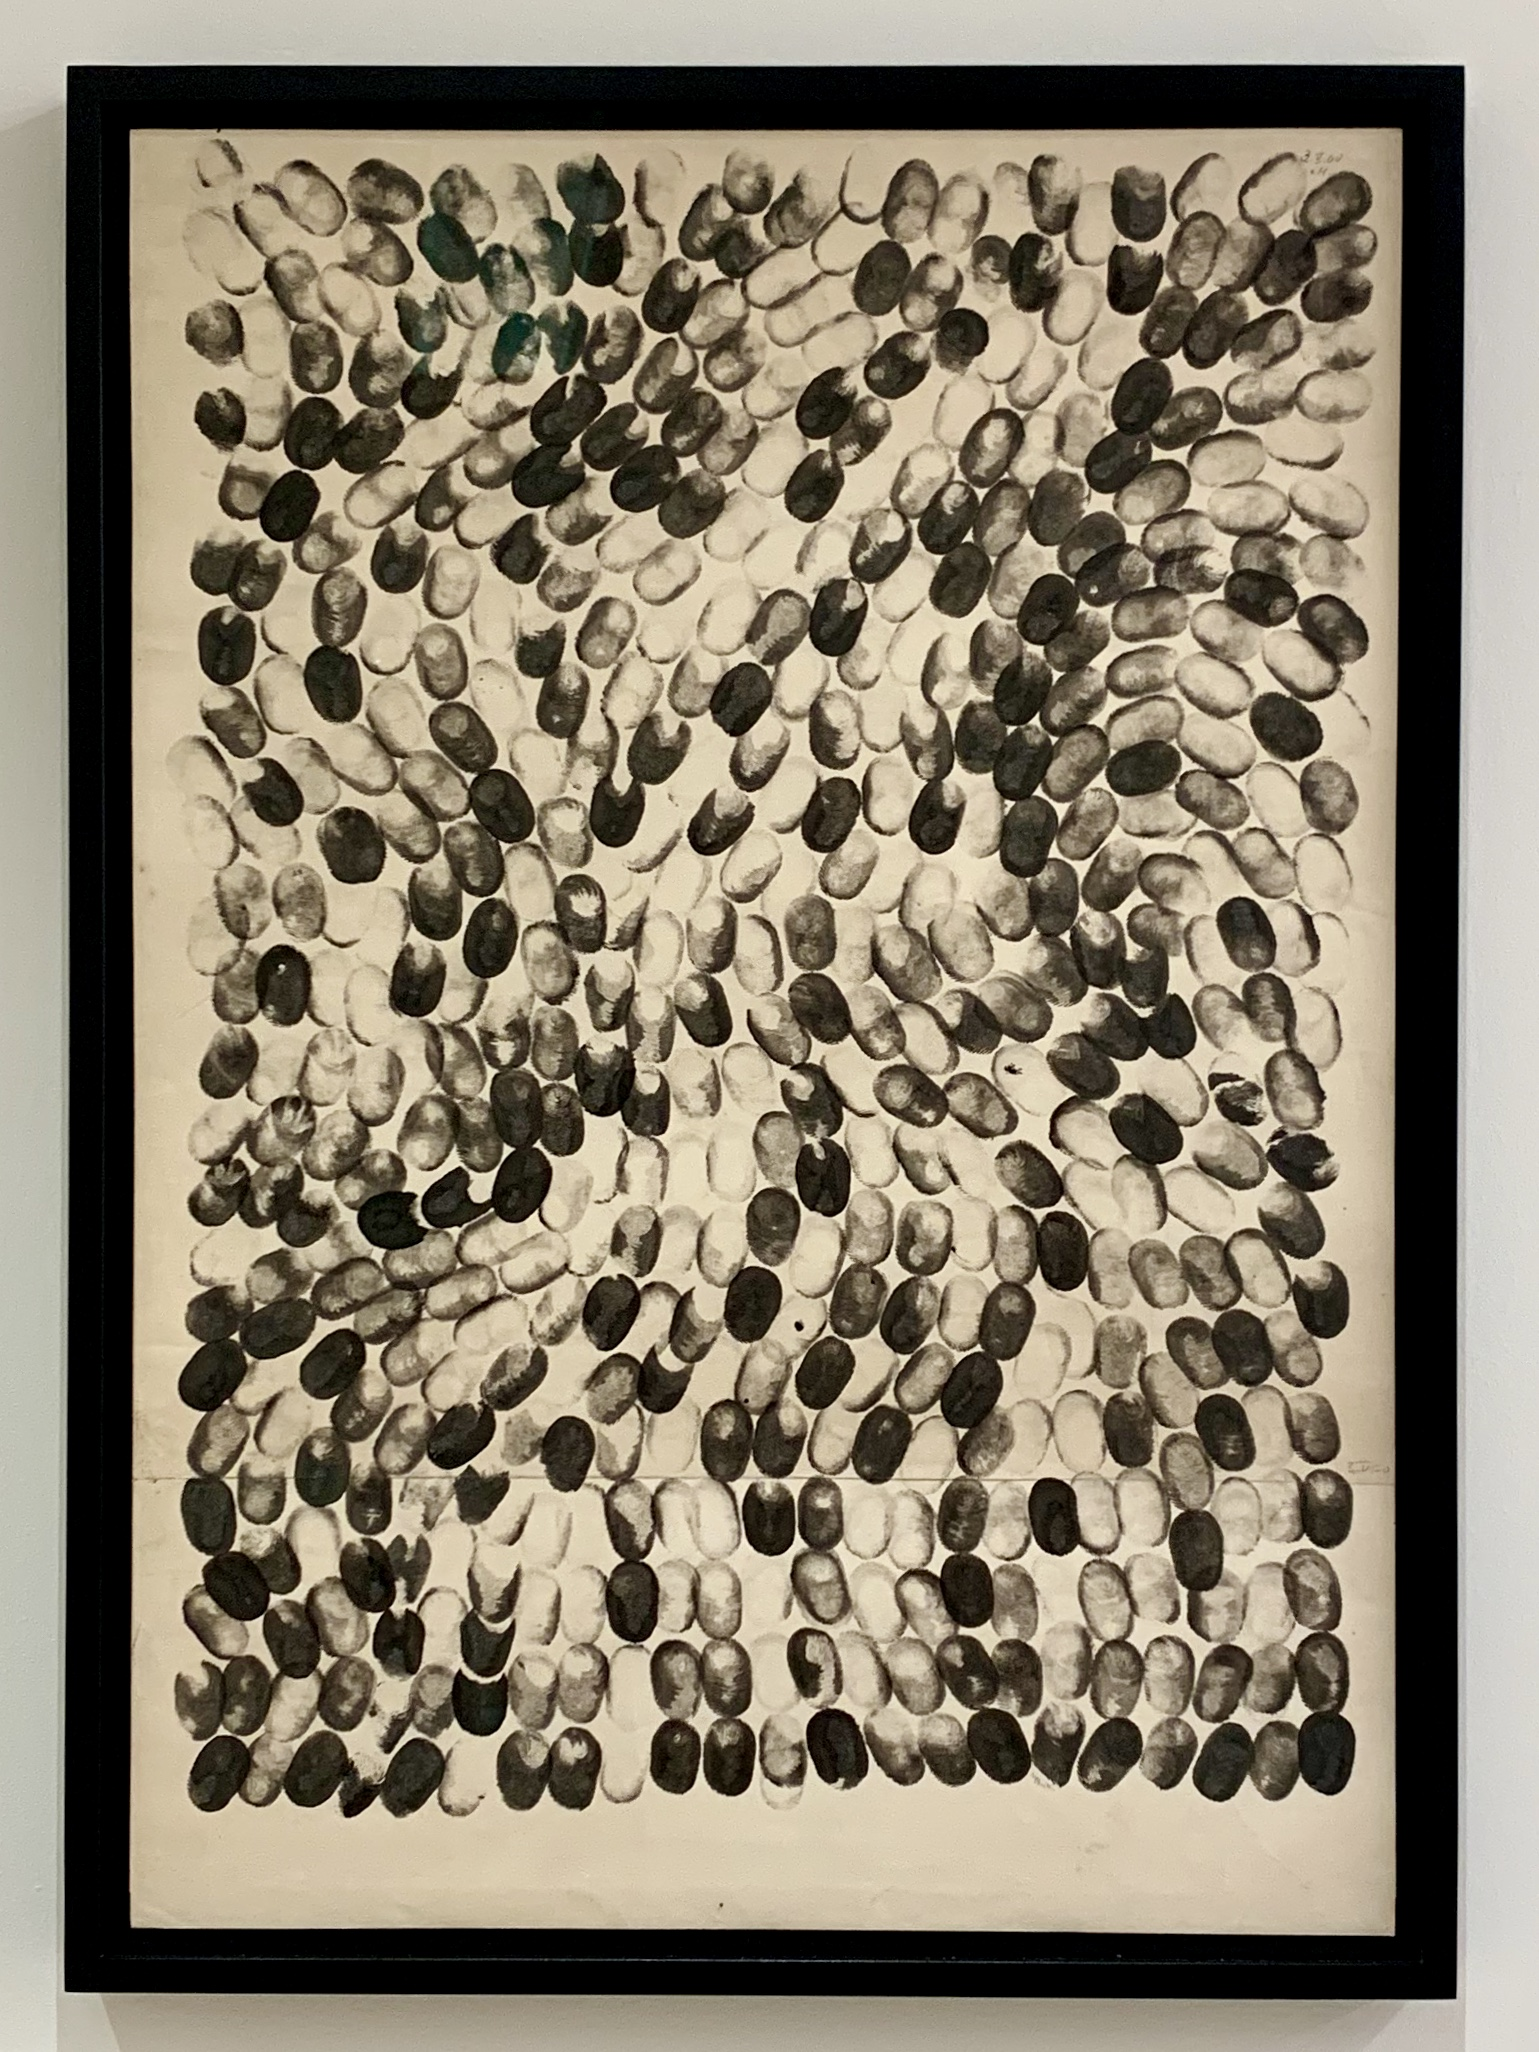 Ewerdt Hilgemann - Untitled, ink on paper, 1960